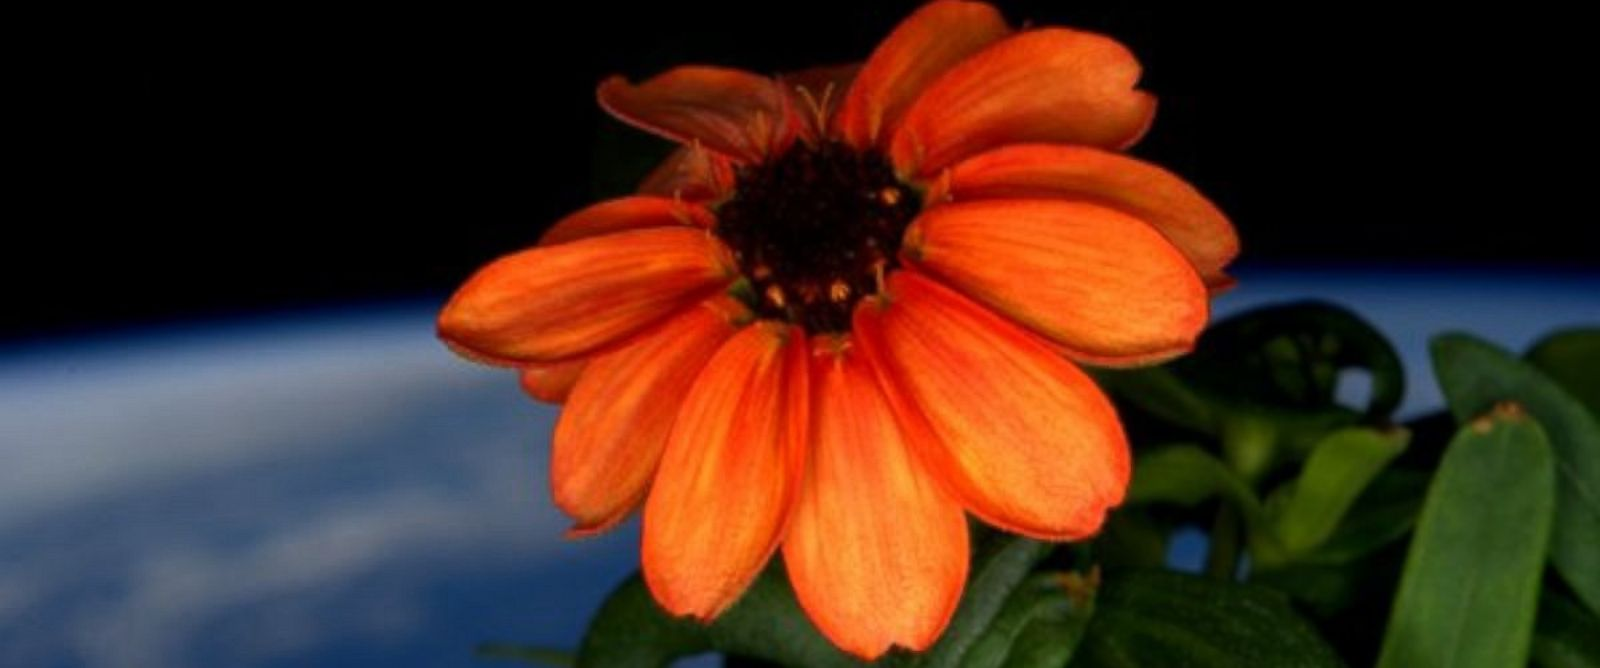 PHOTO: NASA astronaut Scott Kelly shared this photo of a flower grown in space on Jan. 17, 2016.